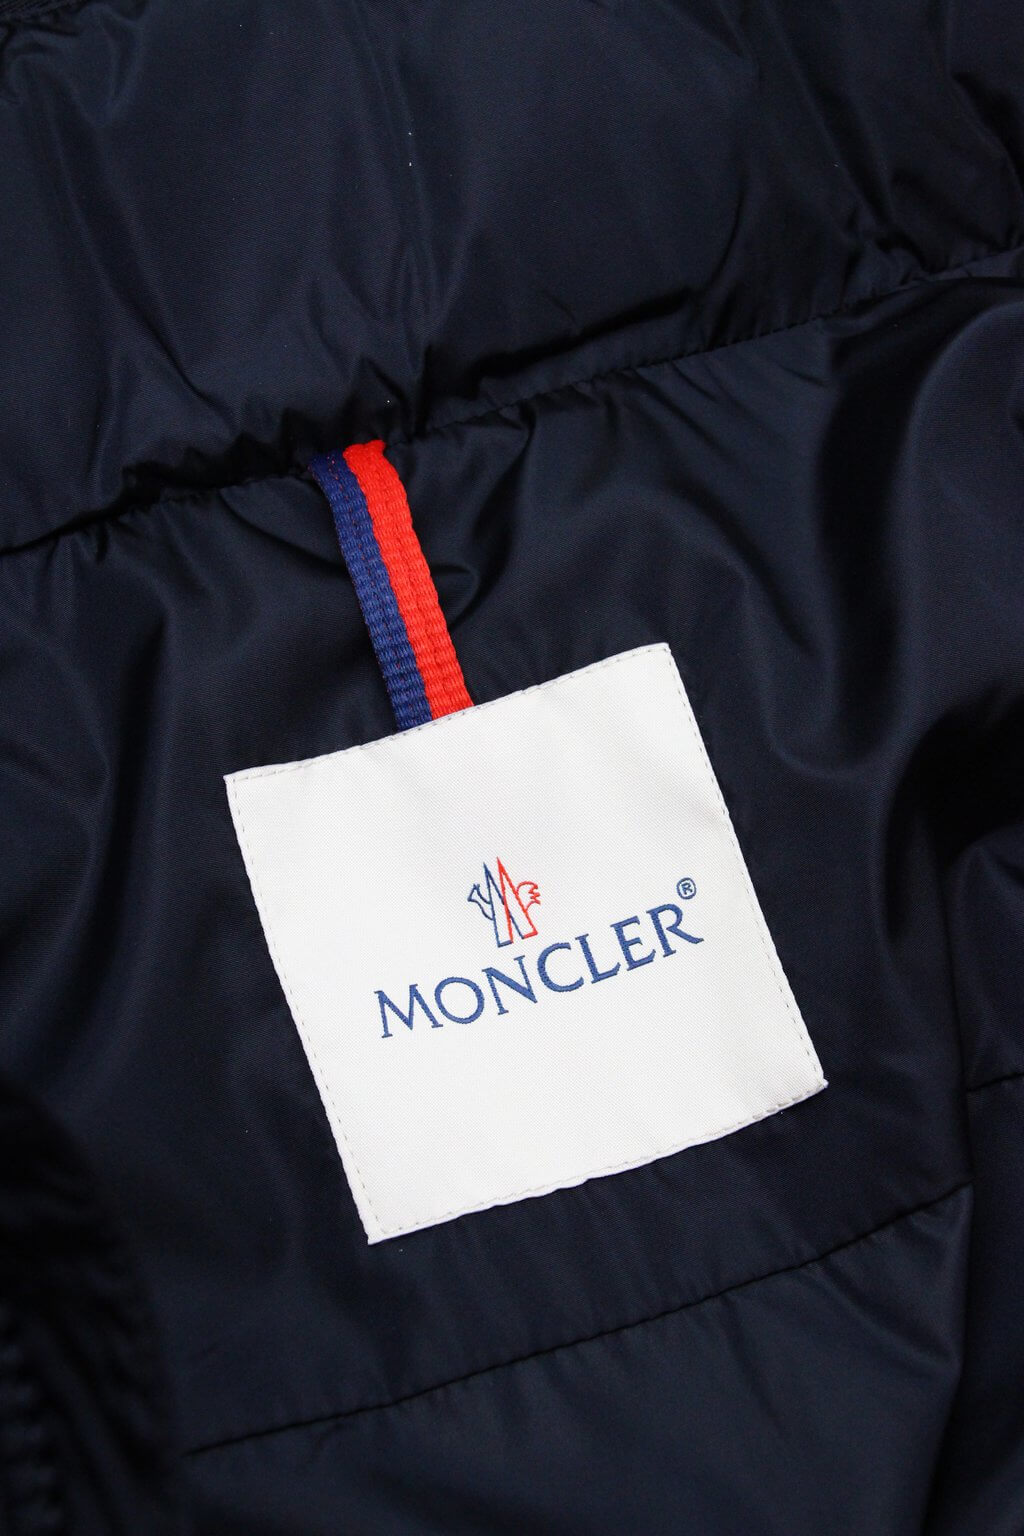 Moncler Men's Giulio Fashion Navy Goulier Windbreaker Jacket 416390554155743